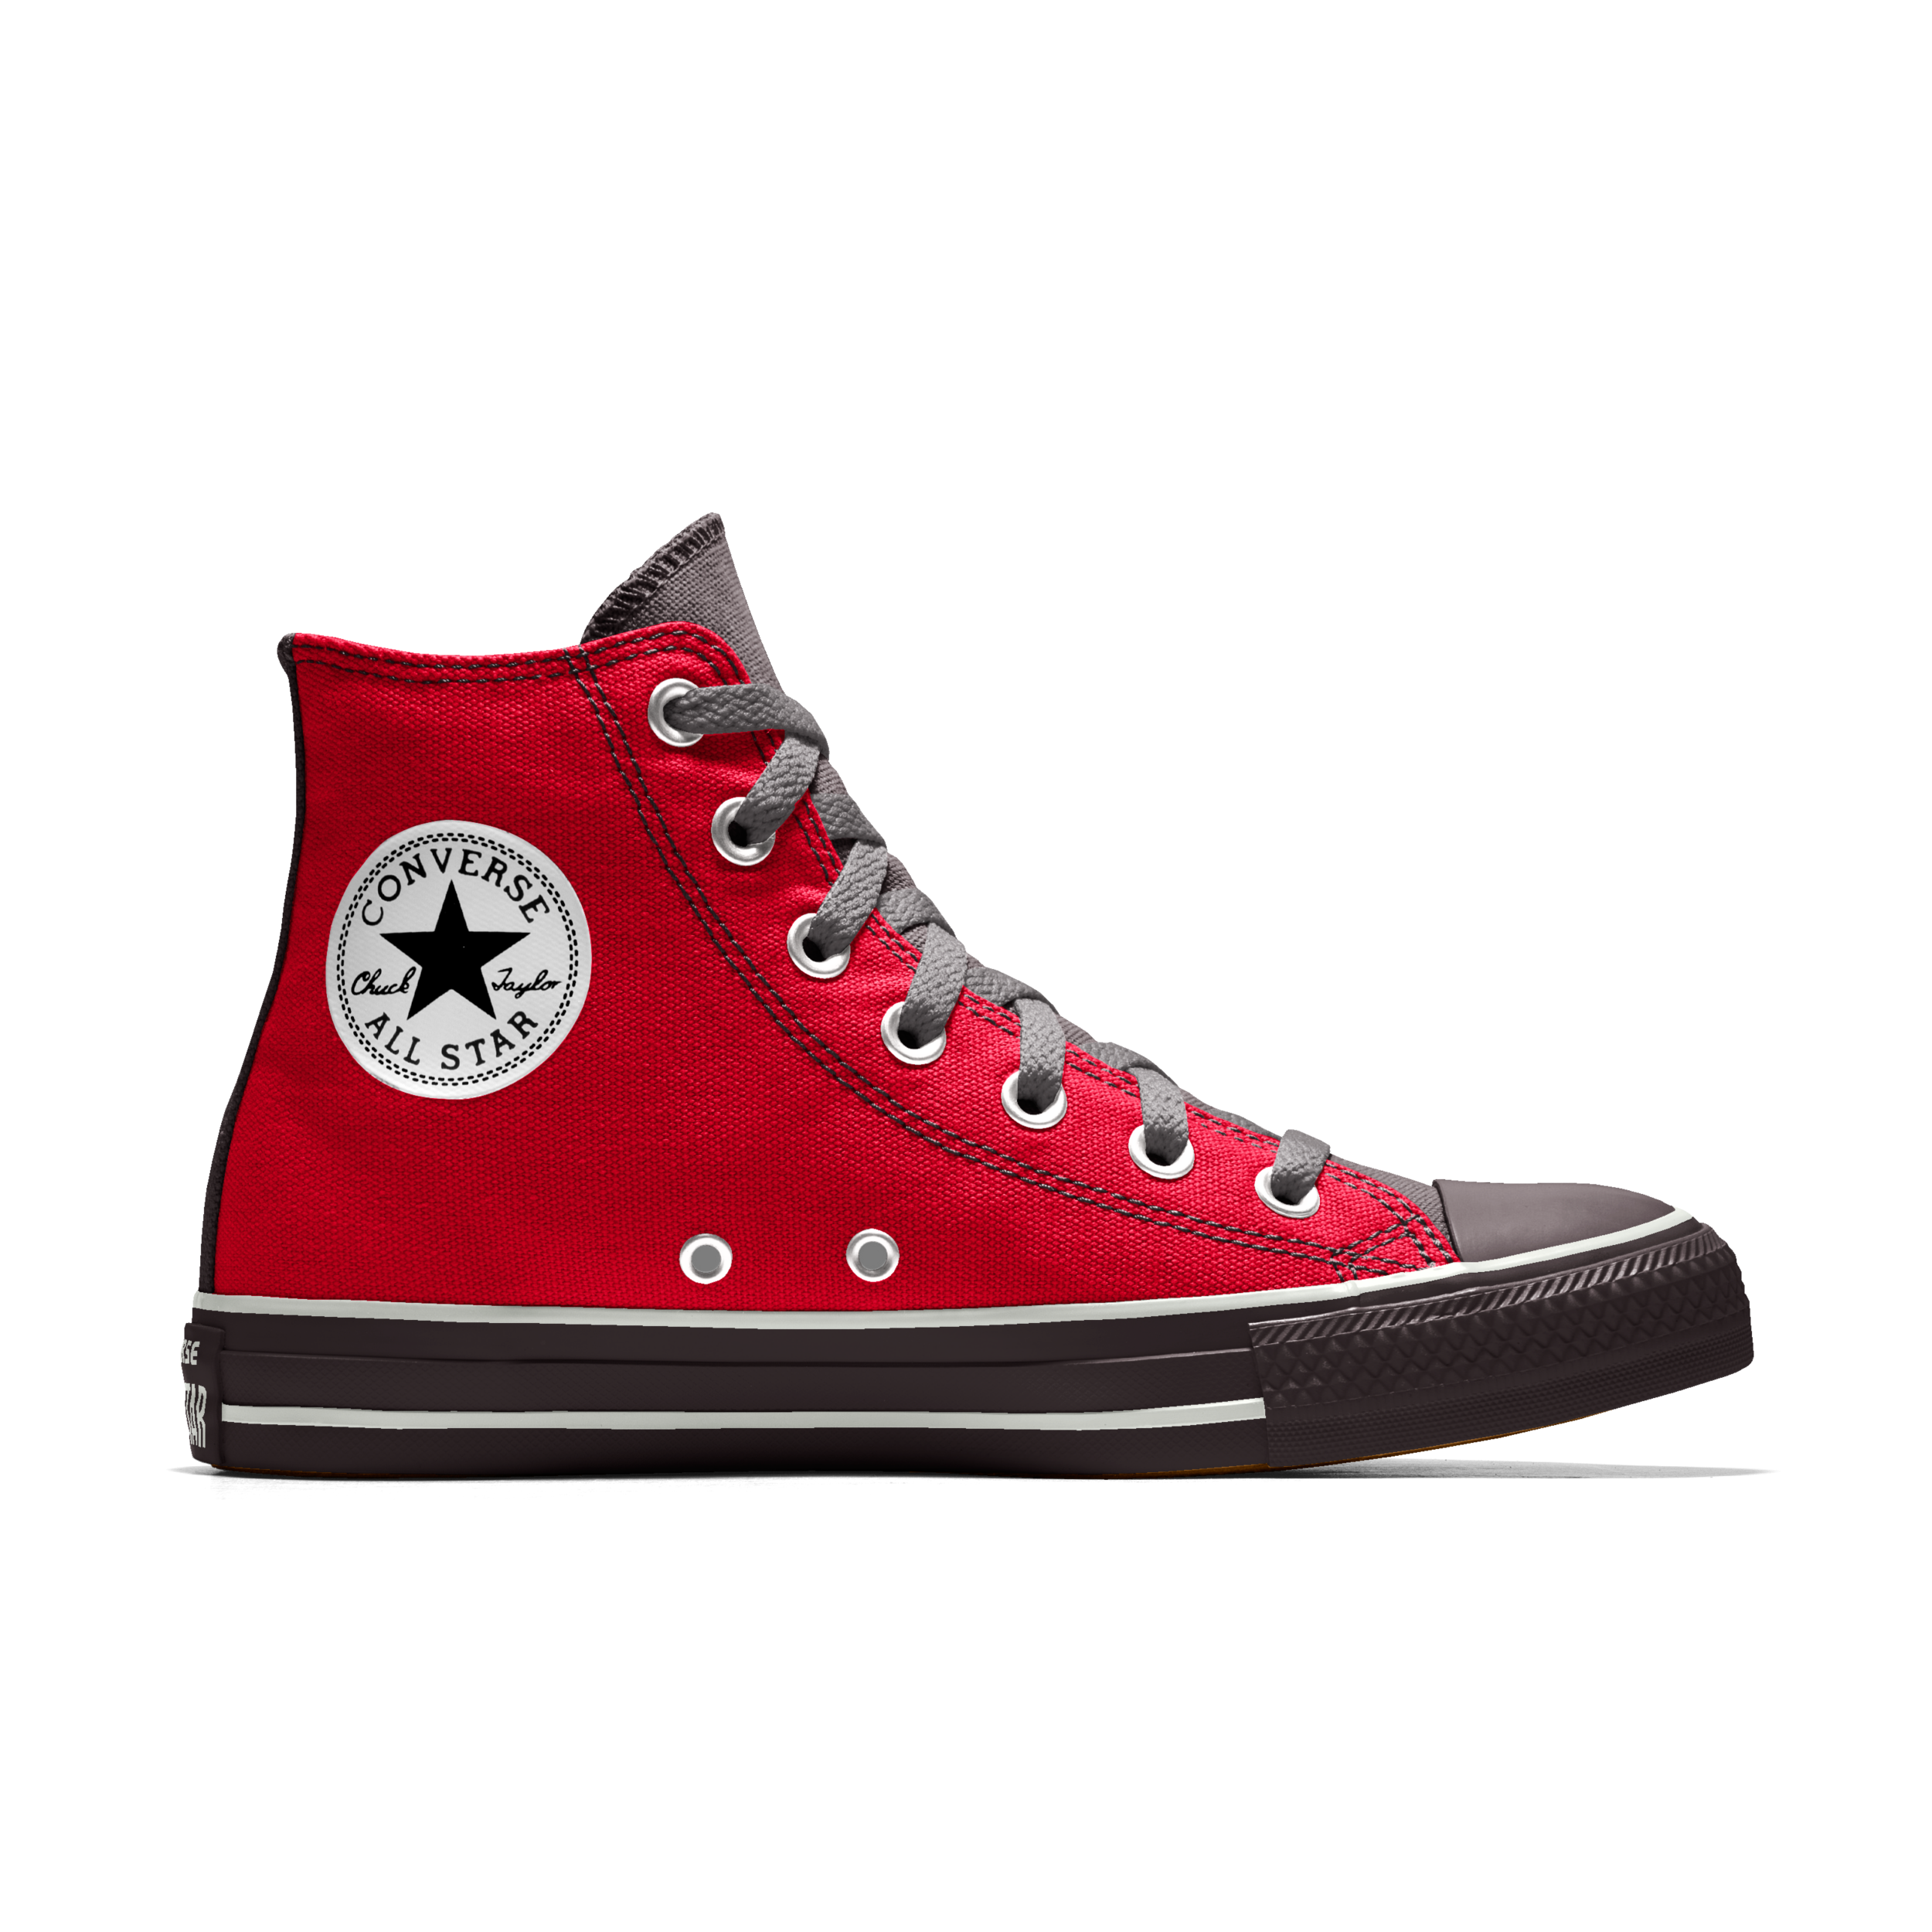 f233fb0df6b8 Converse Custom Chuck Taylor All Star High Top Shoe. Nike.com ...